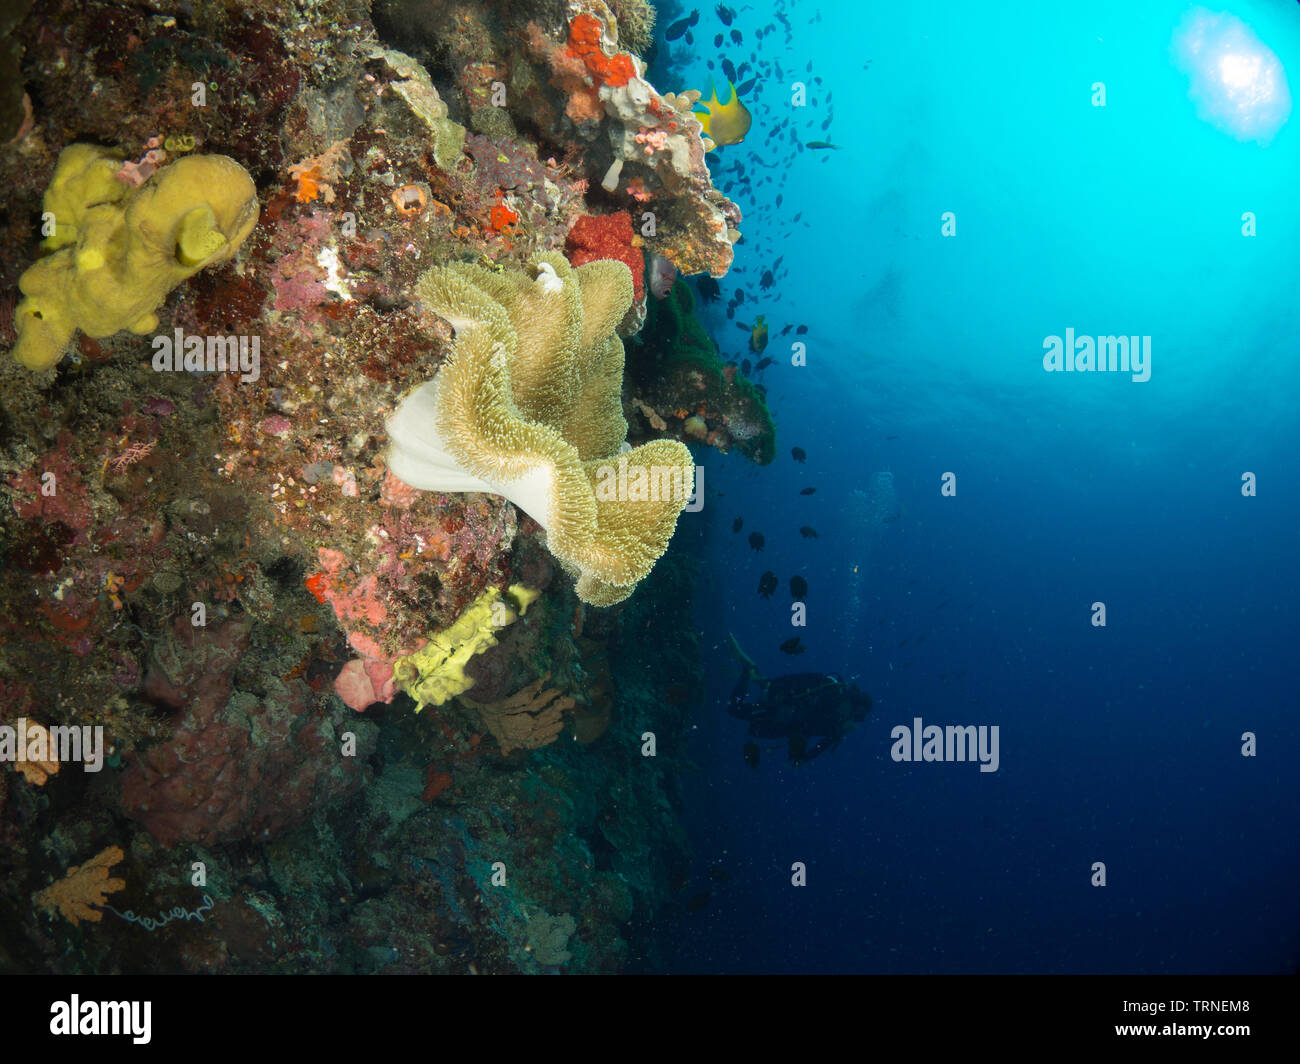 Colorful coral reef underwater in Bunaken Marine Park, North Sulawesi, Indonesia - Stock Image